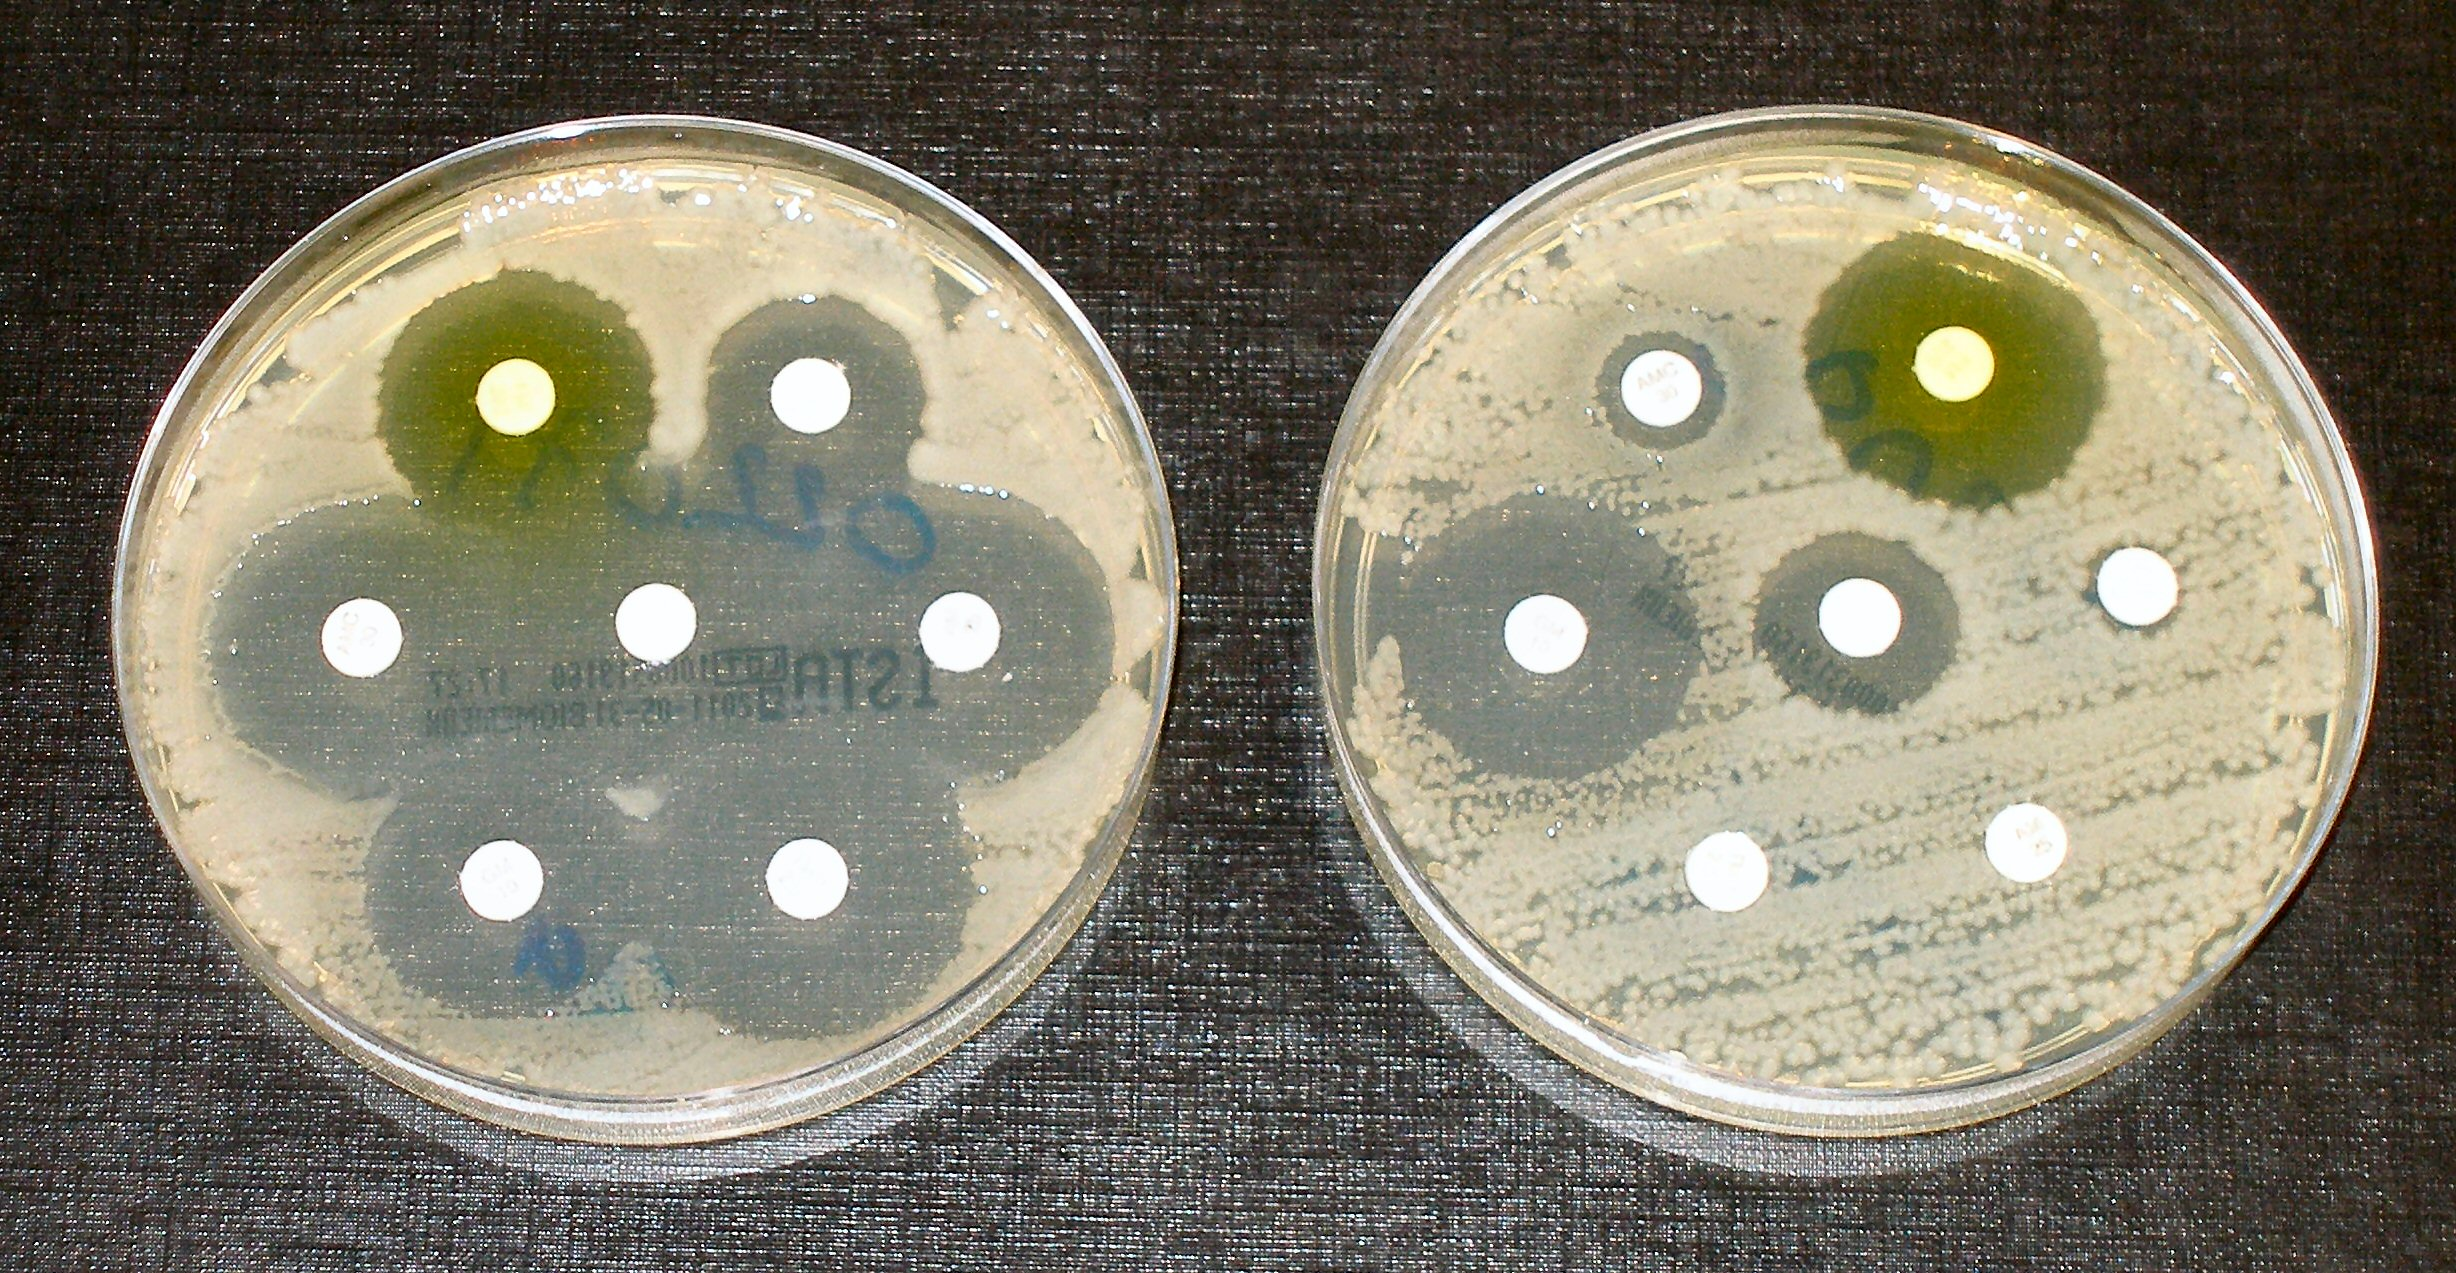 When bacteria develop antibiotic resistance (in the dish on the right), they can grow even in the presence of antibiotics (in the white discs). Image credit - Dr Graham Beards, licensed under CC BY-SA 4.0